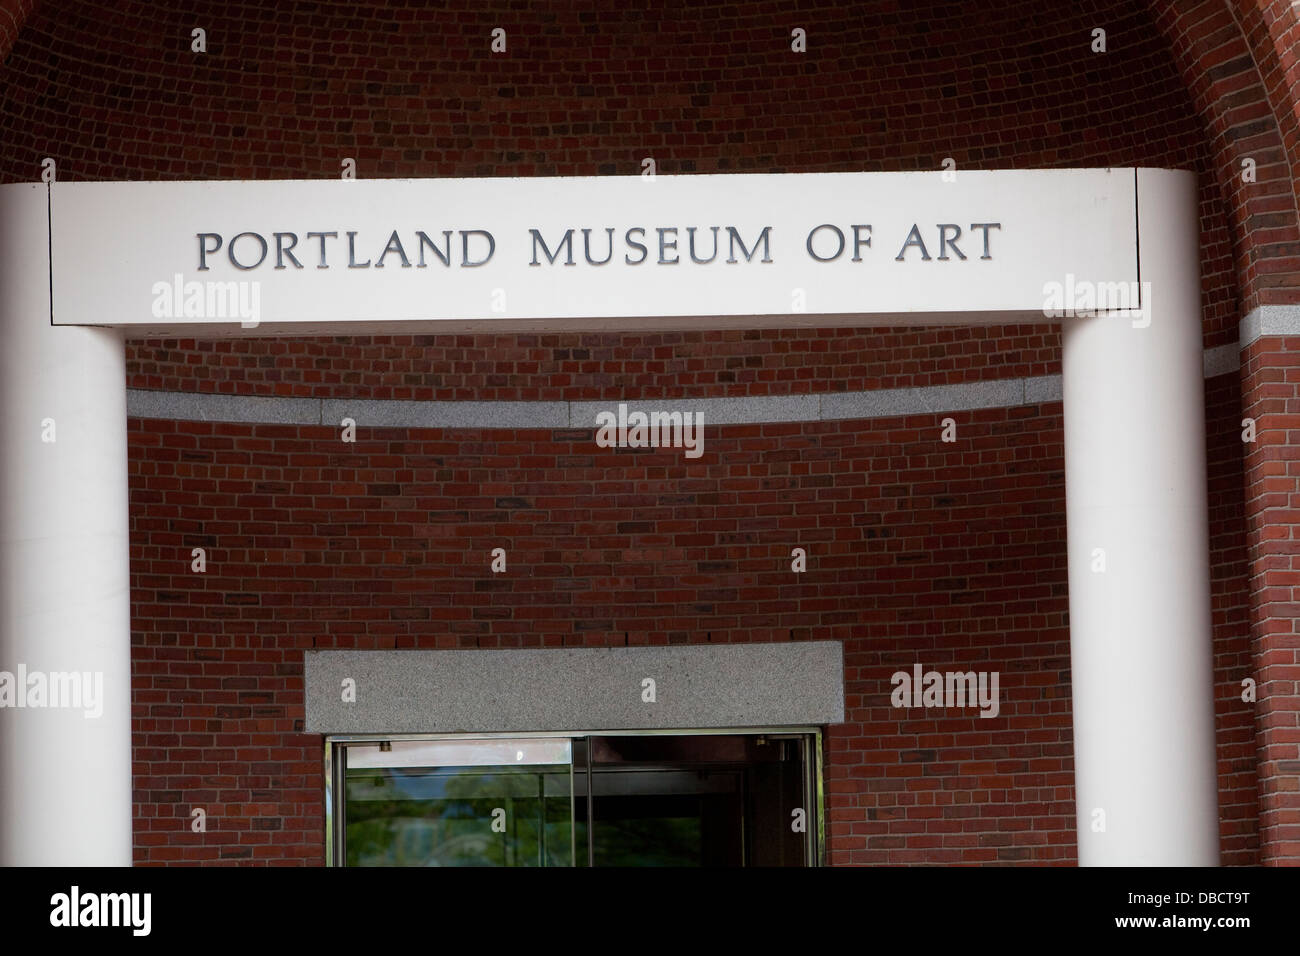 Portland Museum of Art is pictured in Portland, Maine Stock Photo